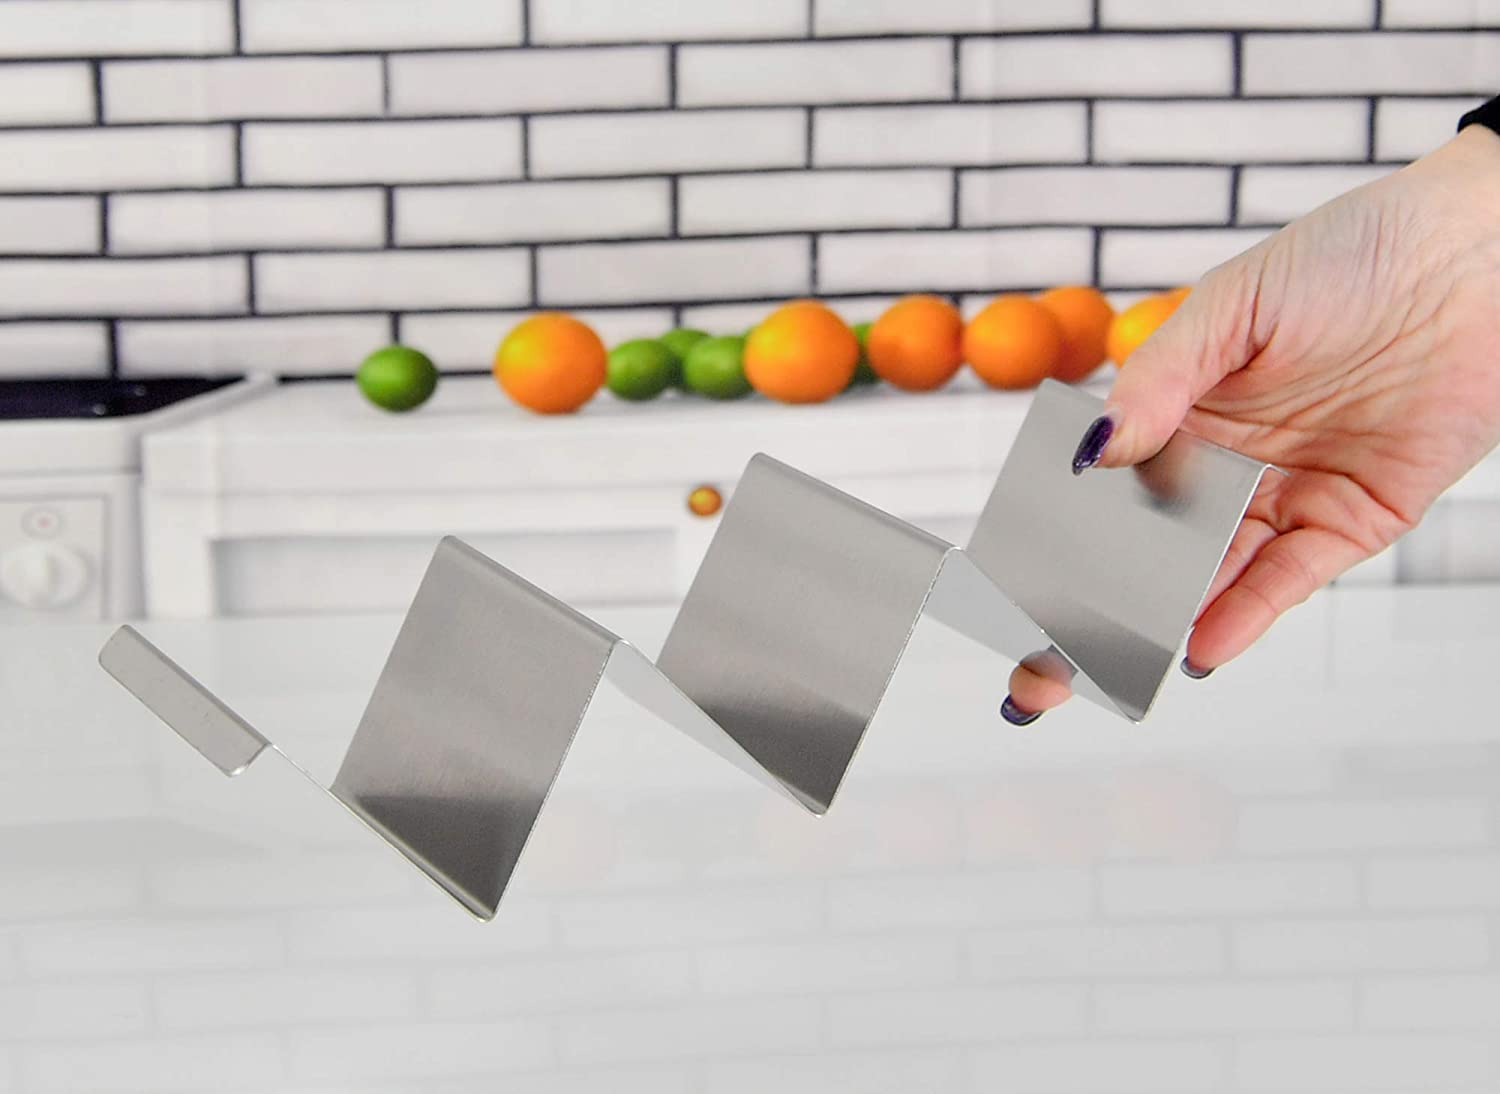 Restaurant and Home Taco Trays Each Tray Holds 2 Tacos HOME-X Stainless-Steel Taco Shell Holders Taco Night-Set of 2 Metal Taco Stand